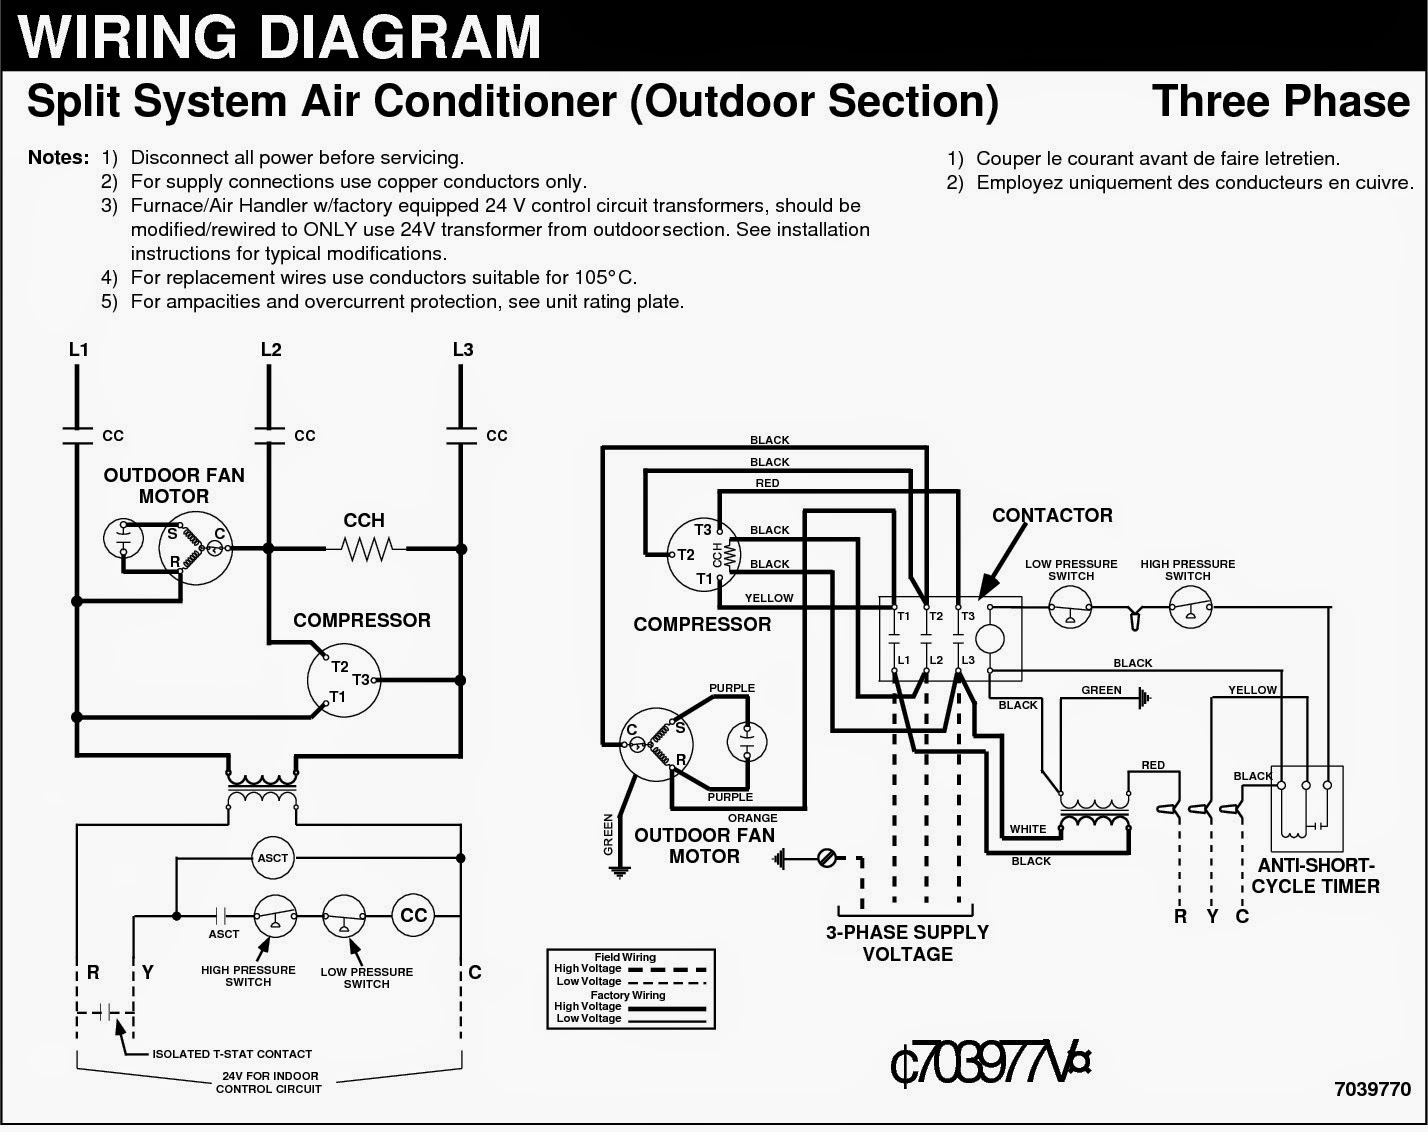 ac wiring diagrams simple wiring diagram wiring diagram for air conditioning home air conditioner wiring diagram just another wiring diagram blog \\u2022 220 volt ac wiring diagram ac wiring diagrams